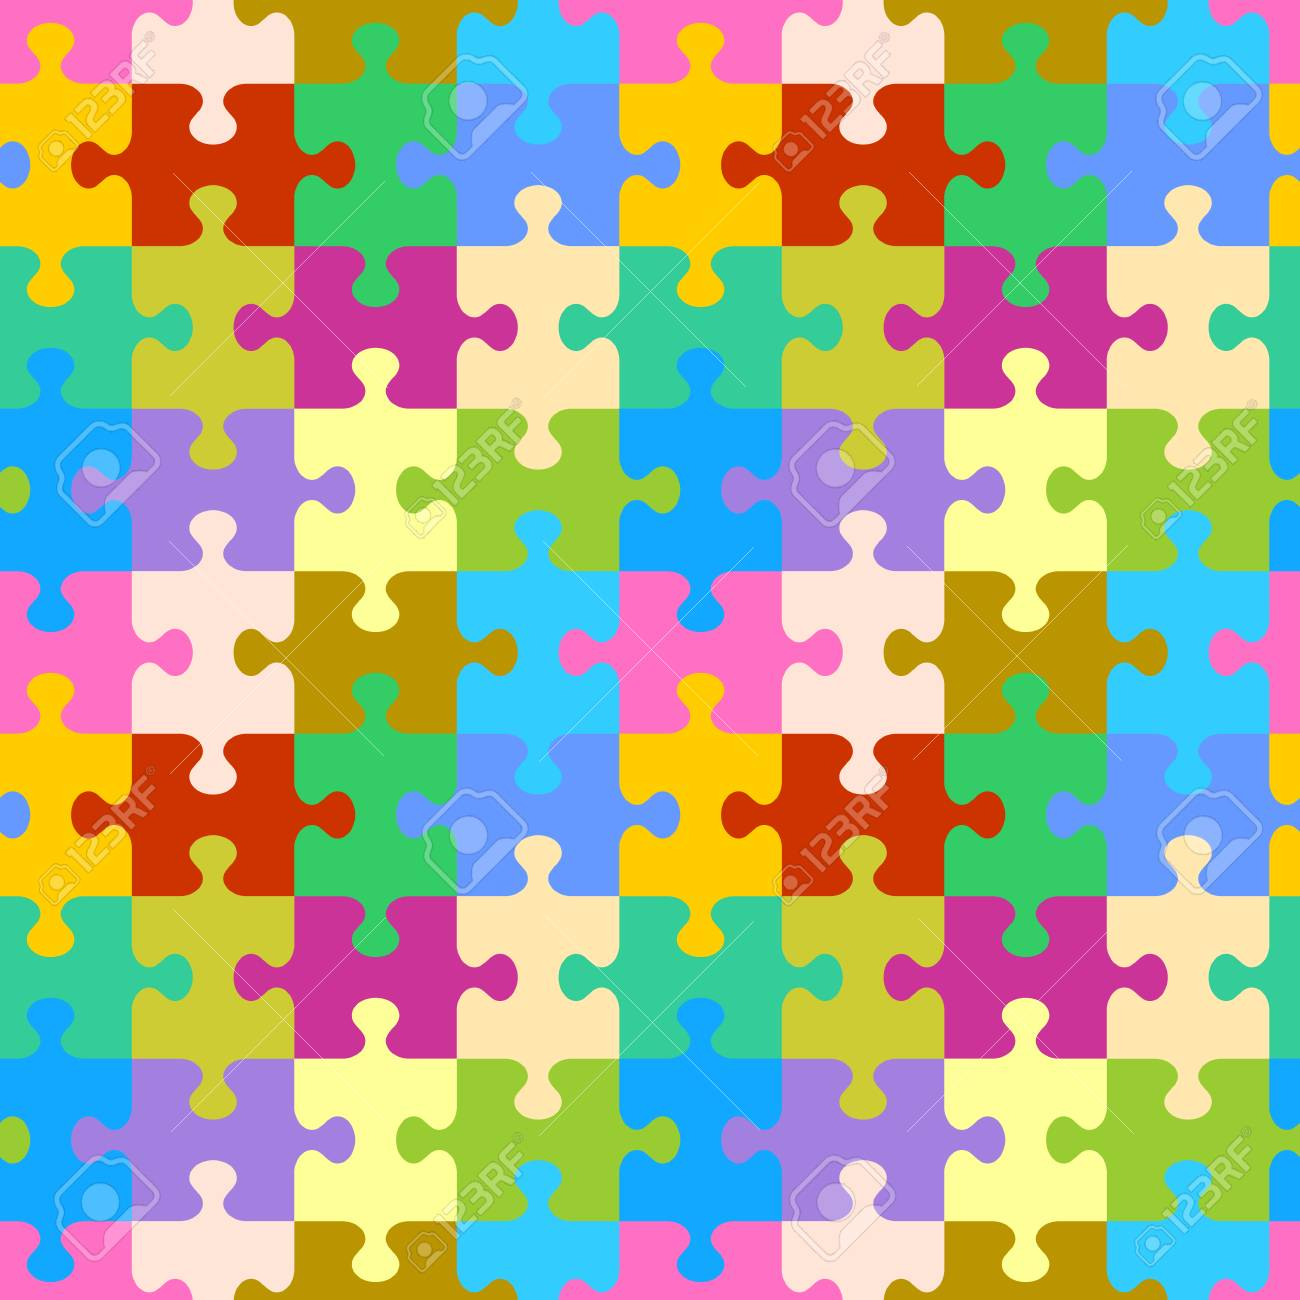 Seamless You See 4 Tiles Colorful Jigsaw Puzzle Pattern Background Print